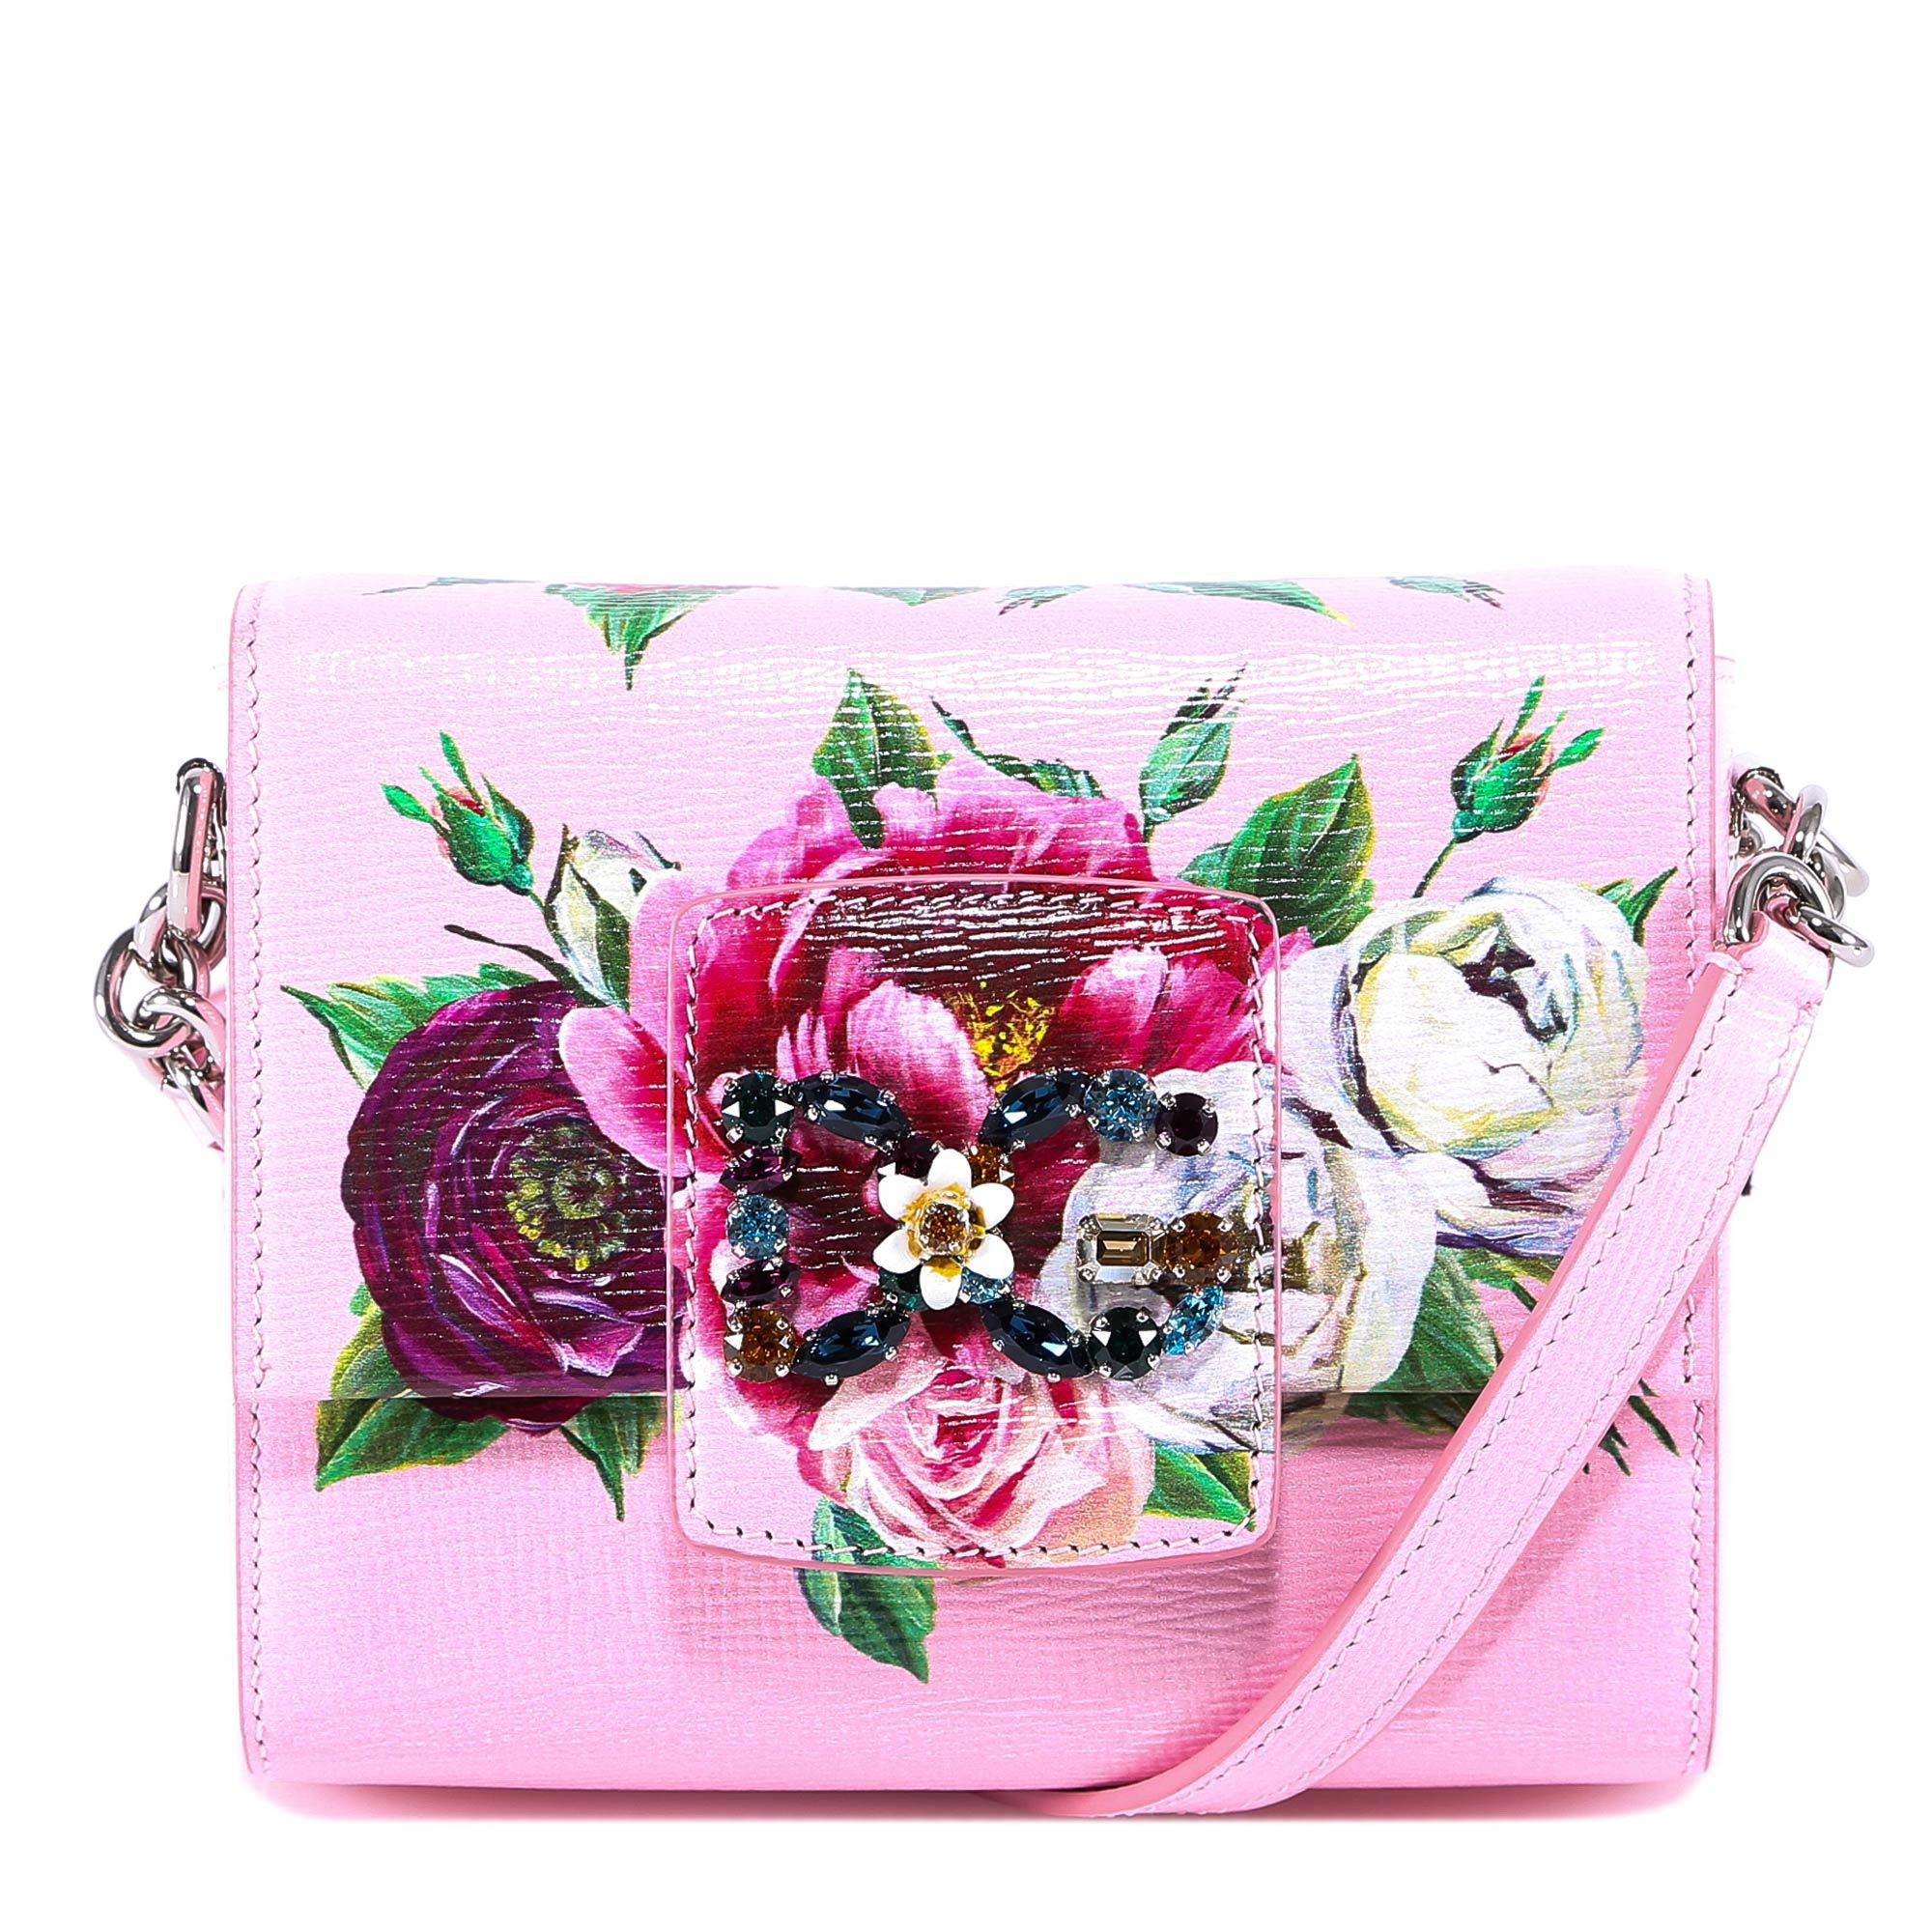 f9164a6573e0 Lyst - Dolce   Gabbana Embellished Rose Print Bag in Pink